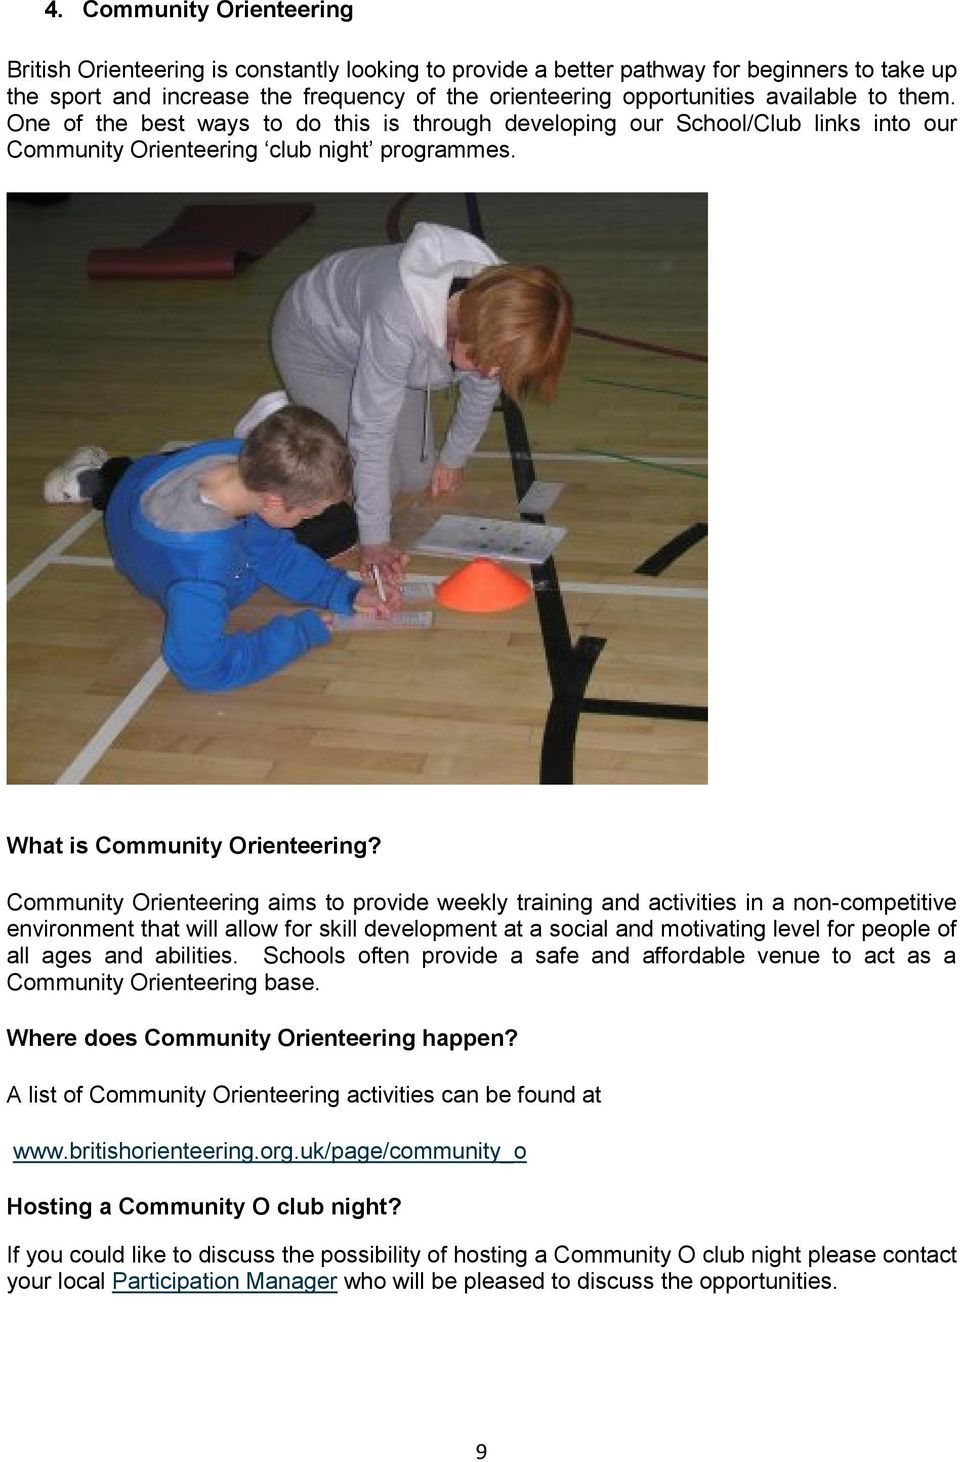 Community Orienteering aims to provide weekly training and activities in a non-competitive environment that will allow for skill development at a social and motivating level for people of all ages